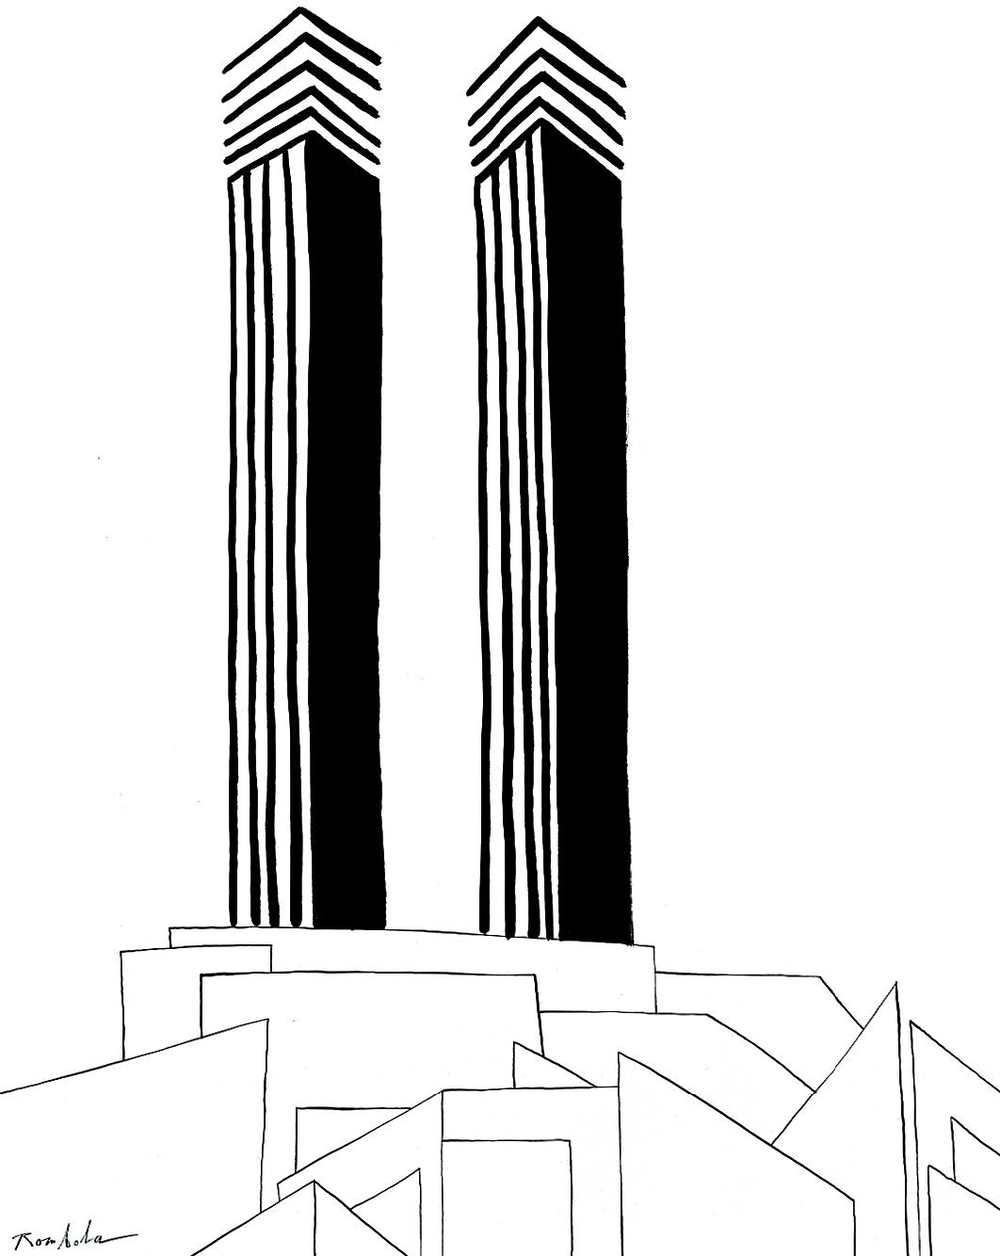 Twin Towers   circa 1973 / 74 Ink on paper